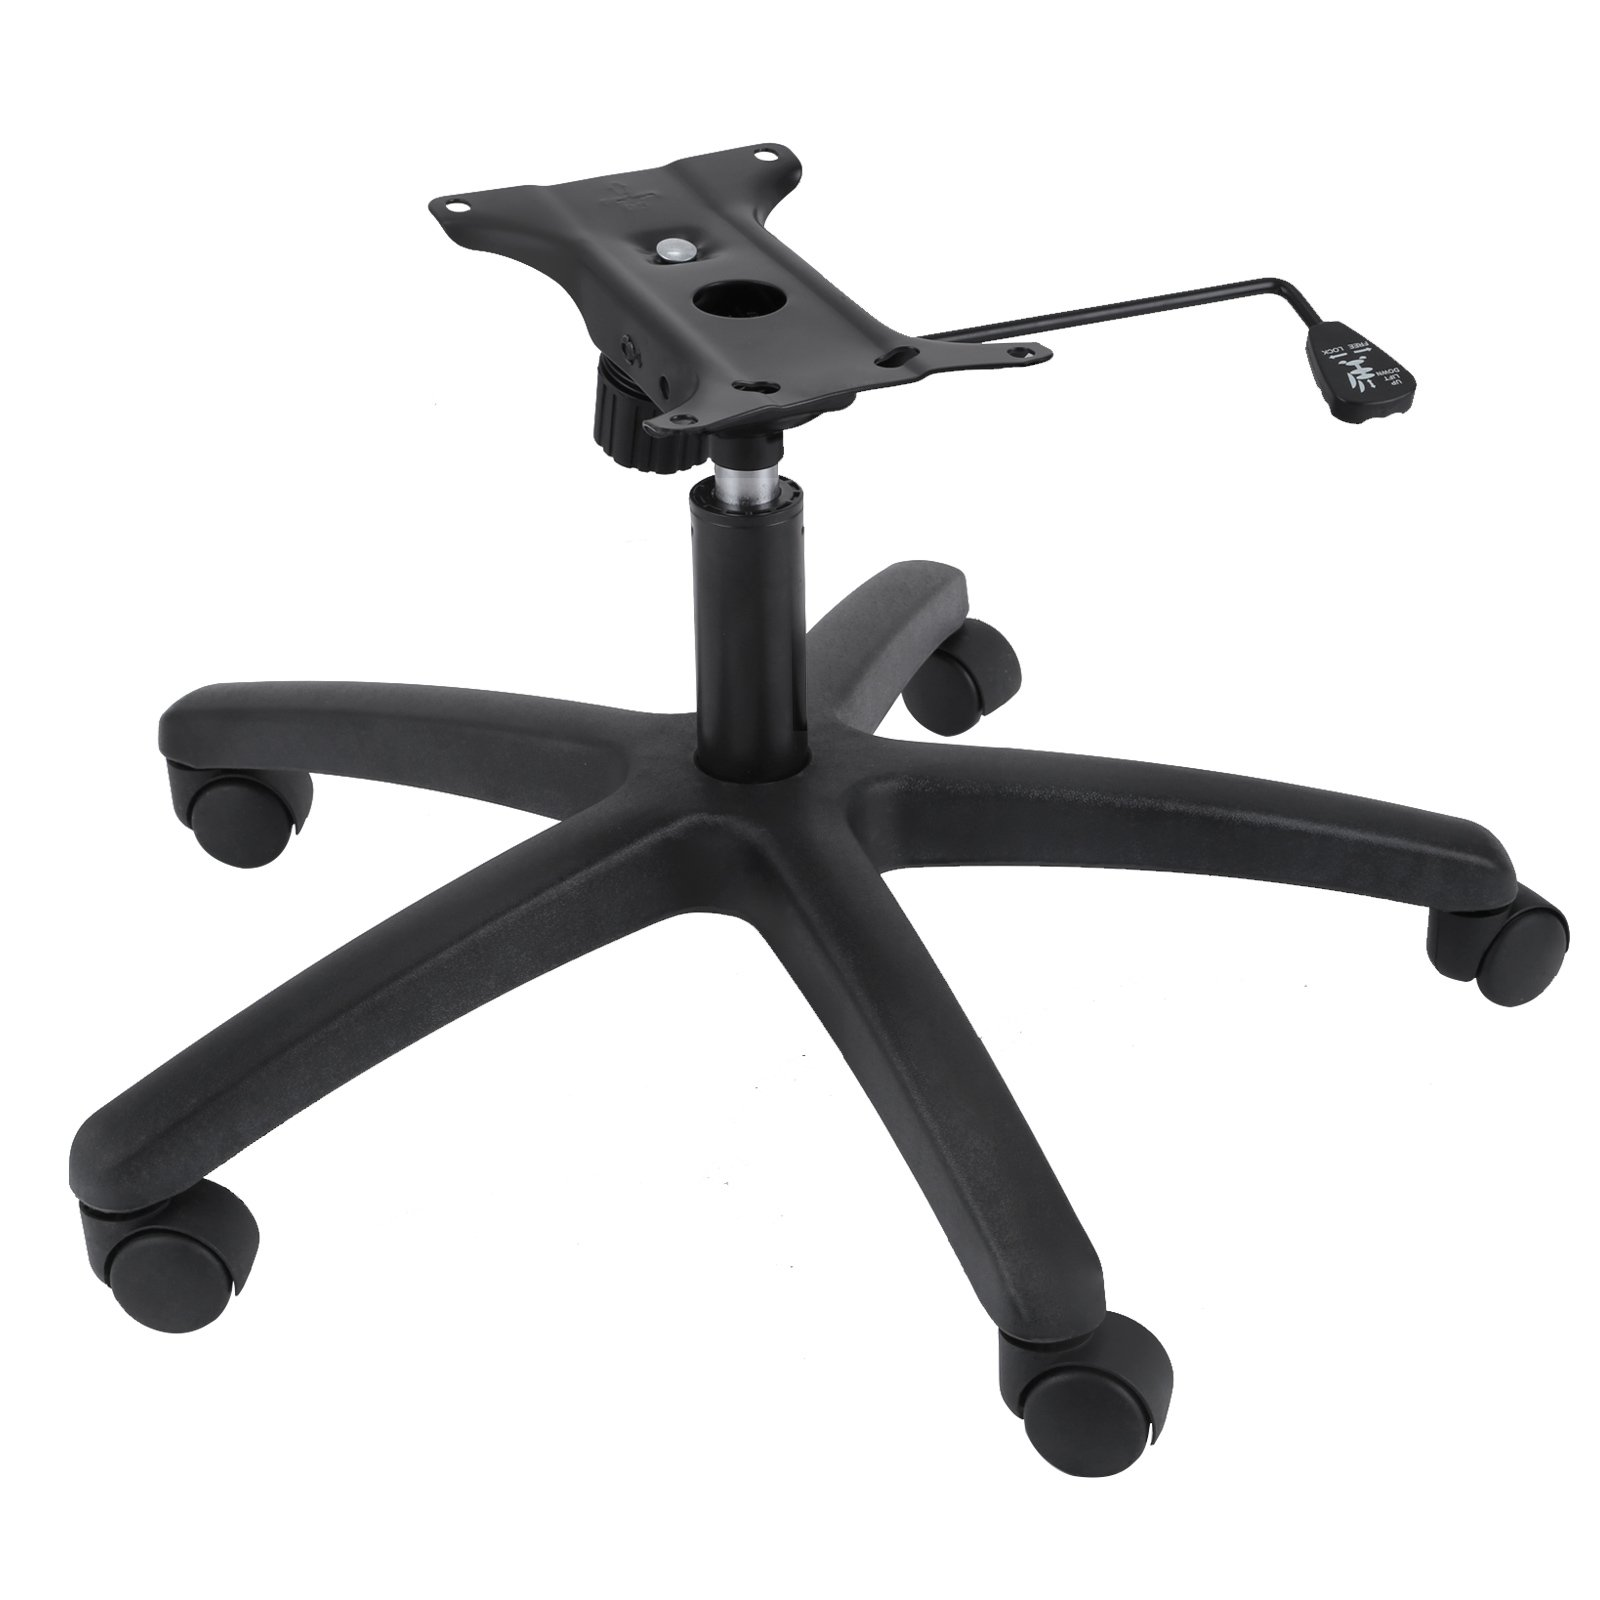 Mophorn Office Chair Base 28 Inch Swivel Chair Base Heavy Duty 350 Pounds Replacement Office Chair Base with Bottom Plate Base Cylinder and 5 Casters (Conversion Chair Base) by Mophorn